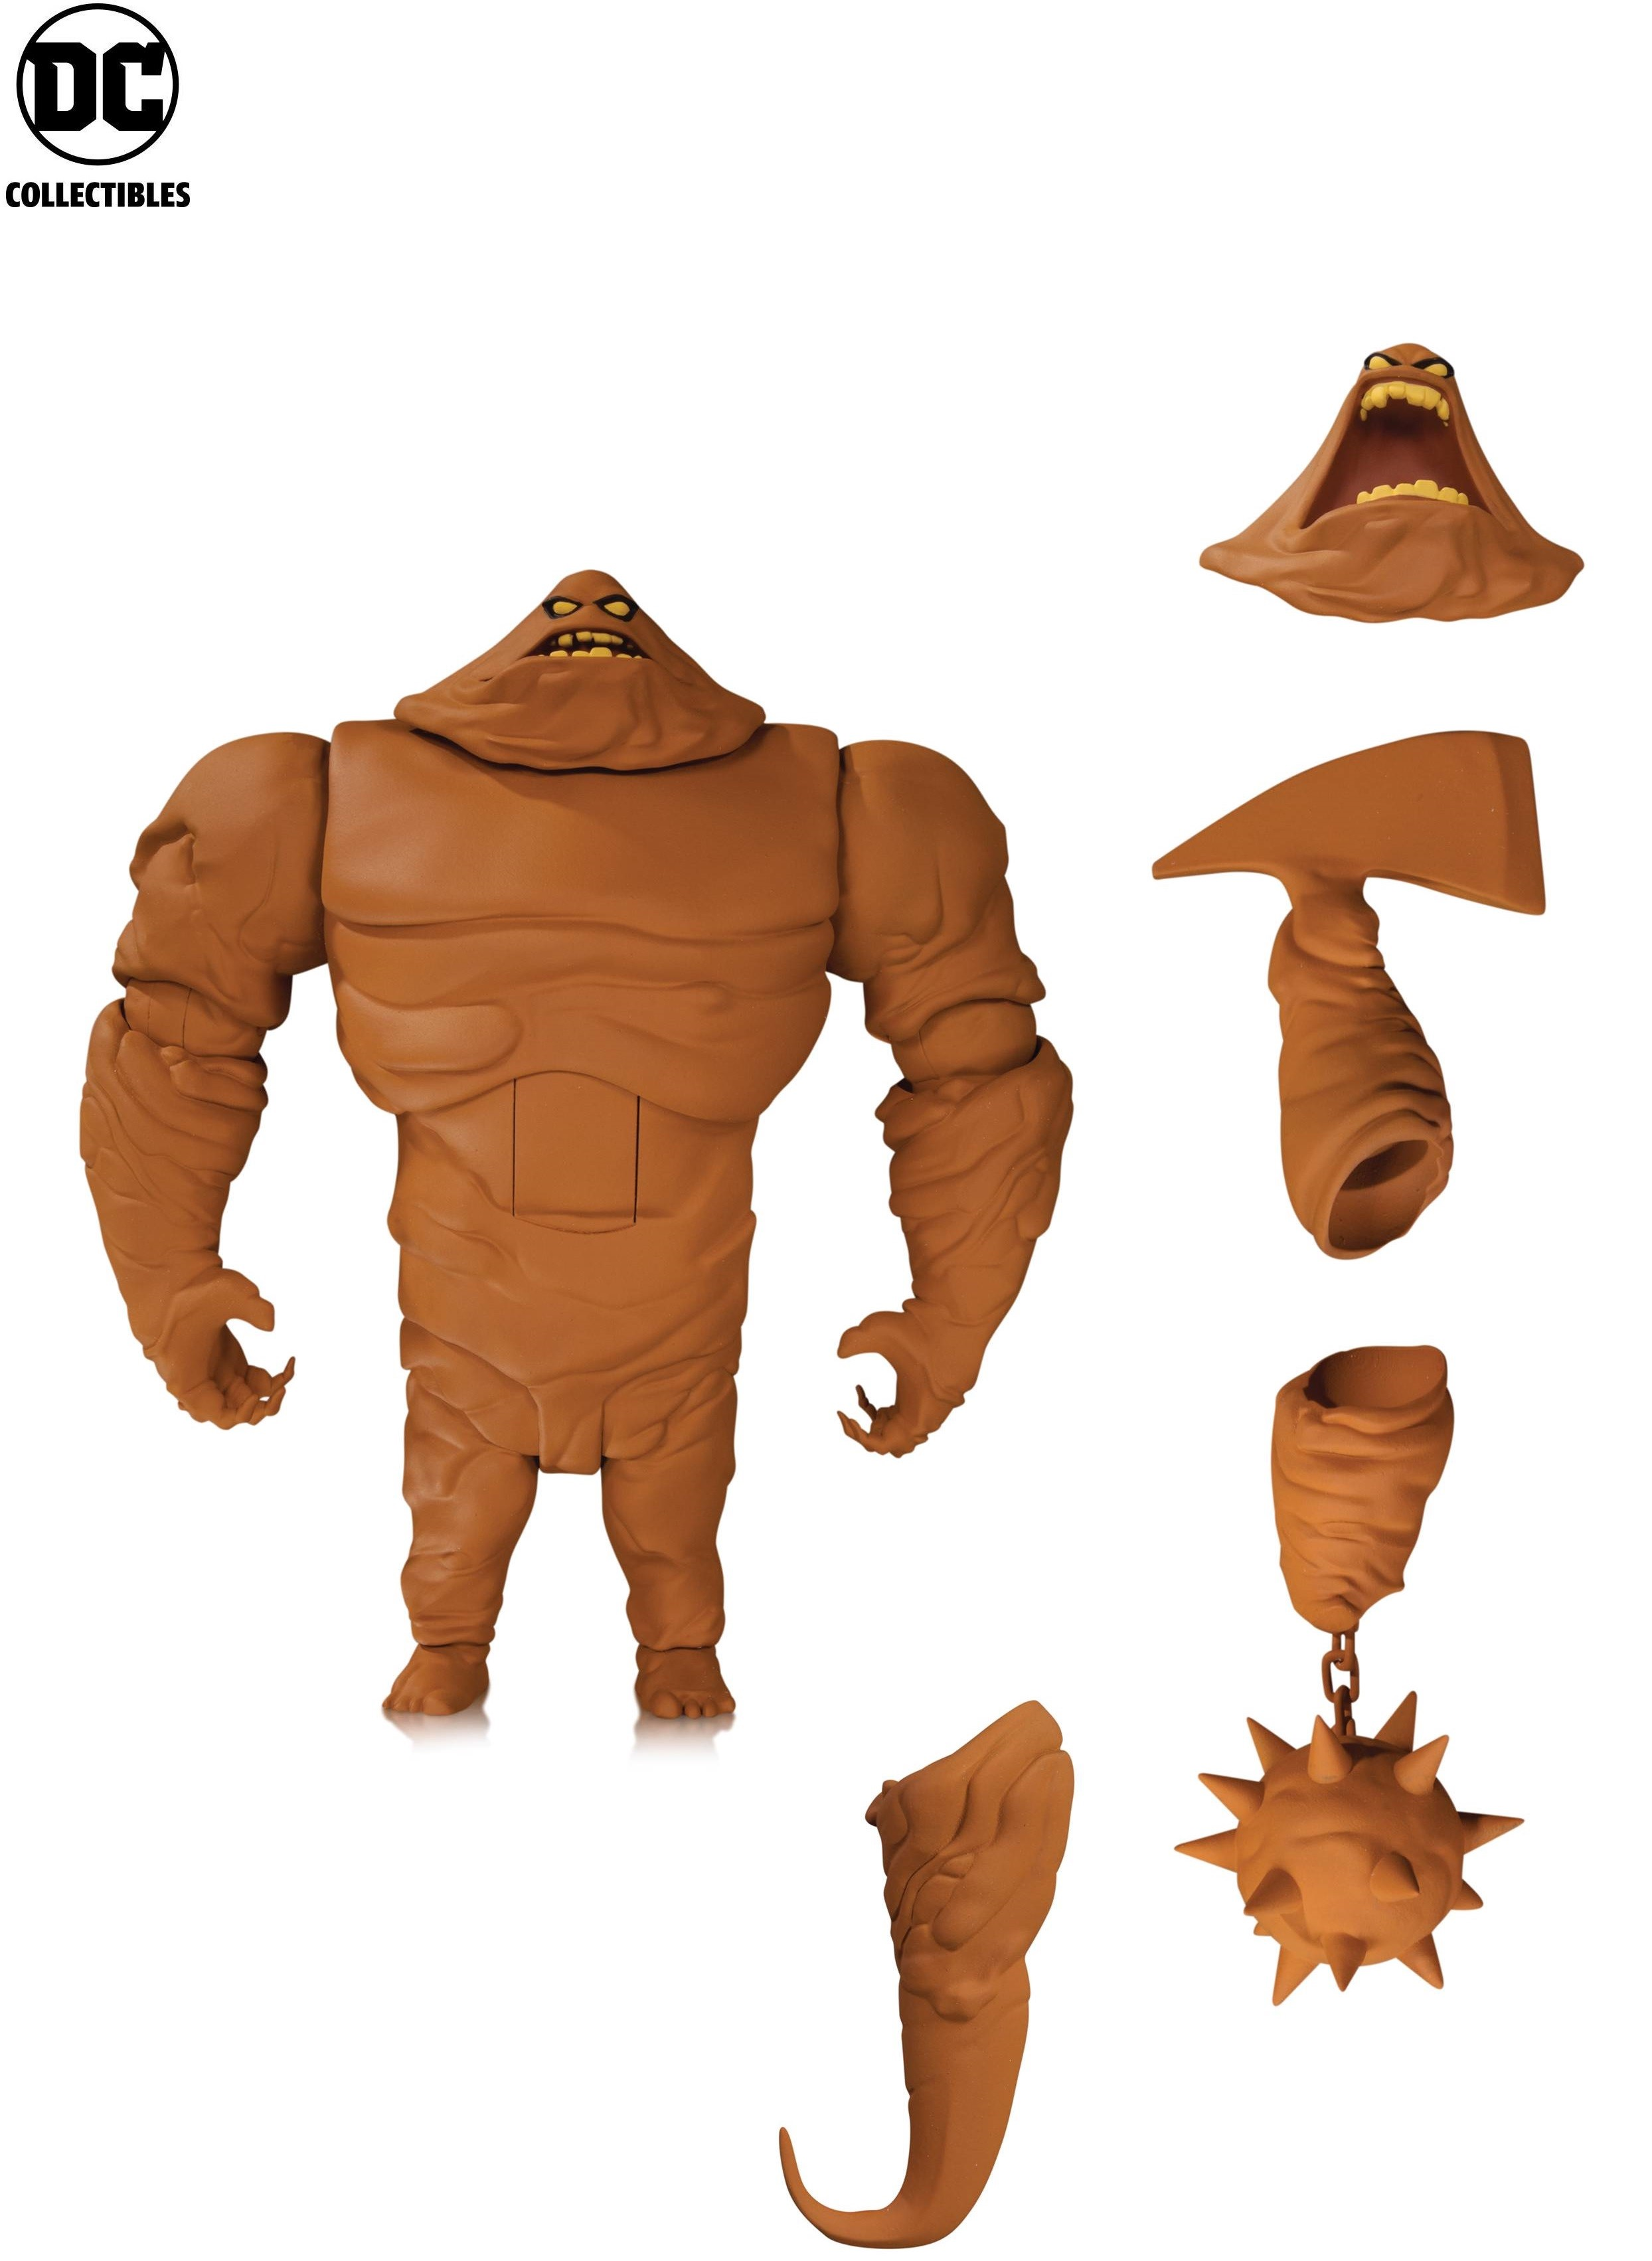 DC Comics Batman Animated Clayface (NBA) Deluxe Figure